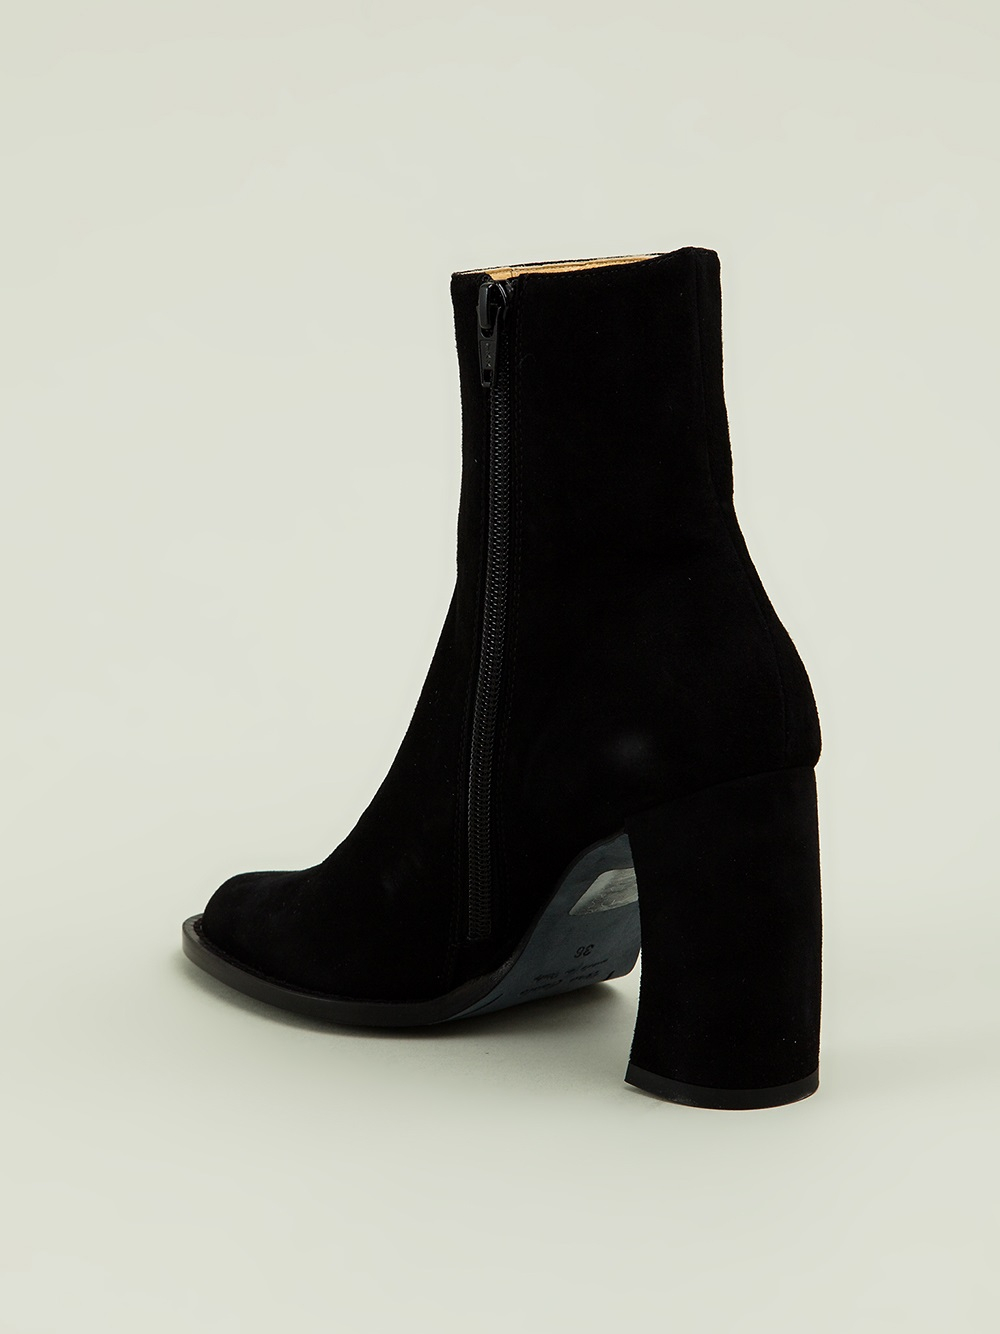 Ann Demeulemeester Blanche Curved Heel Ankle Boots in Black